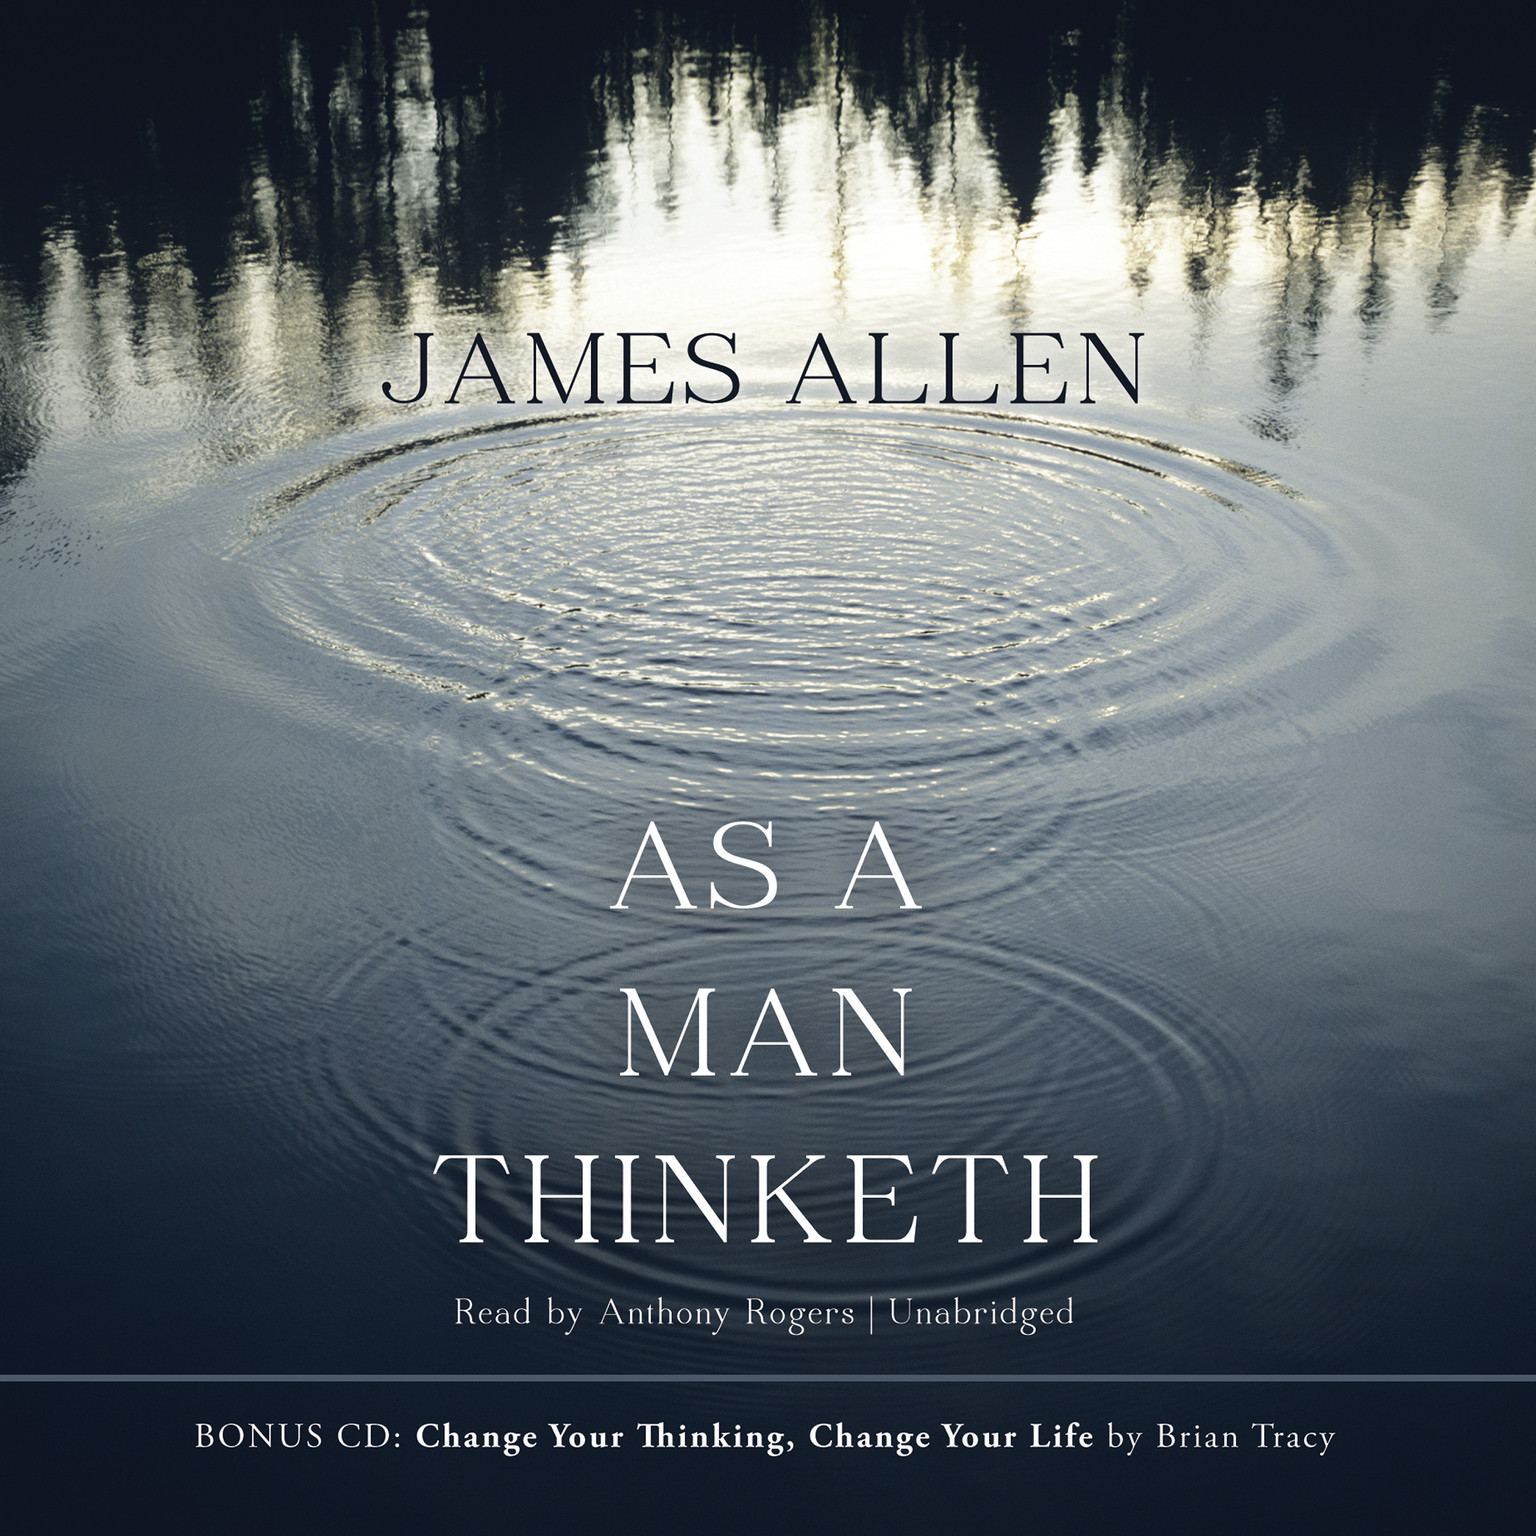 As A Man Thinketh  Audiobook  Listen Instantly